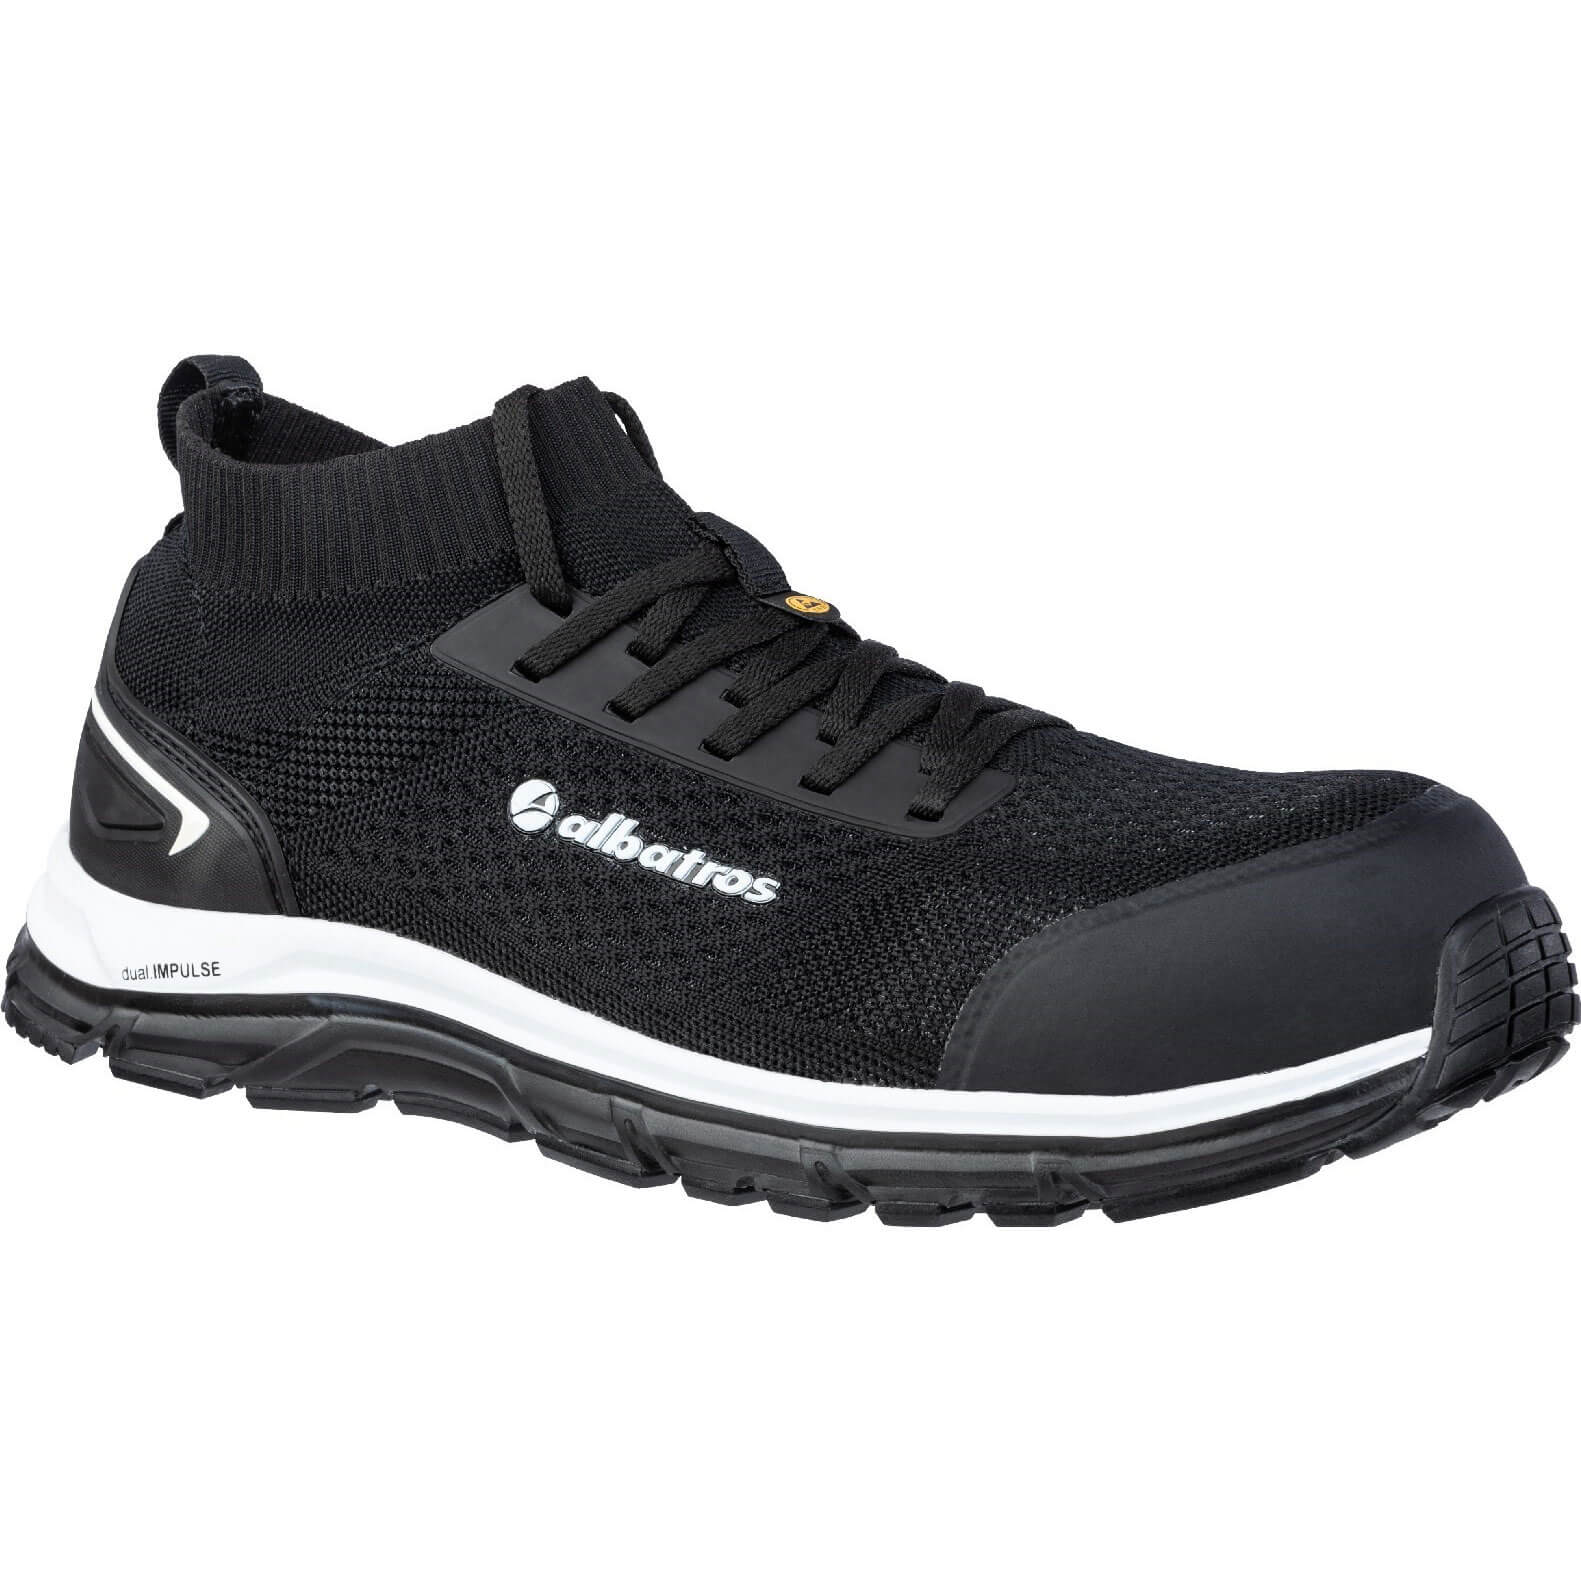 Image of Albatros Ultimate Impulse Low Lace Up Safety Shoe Black Size 10